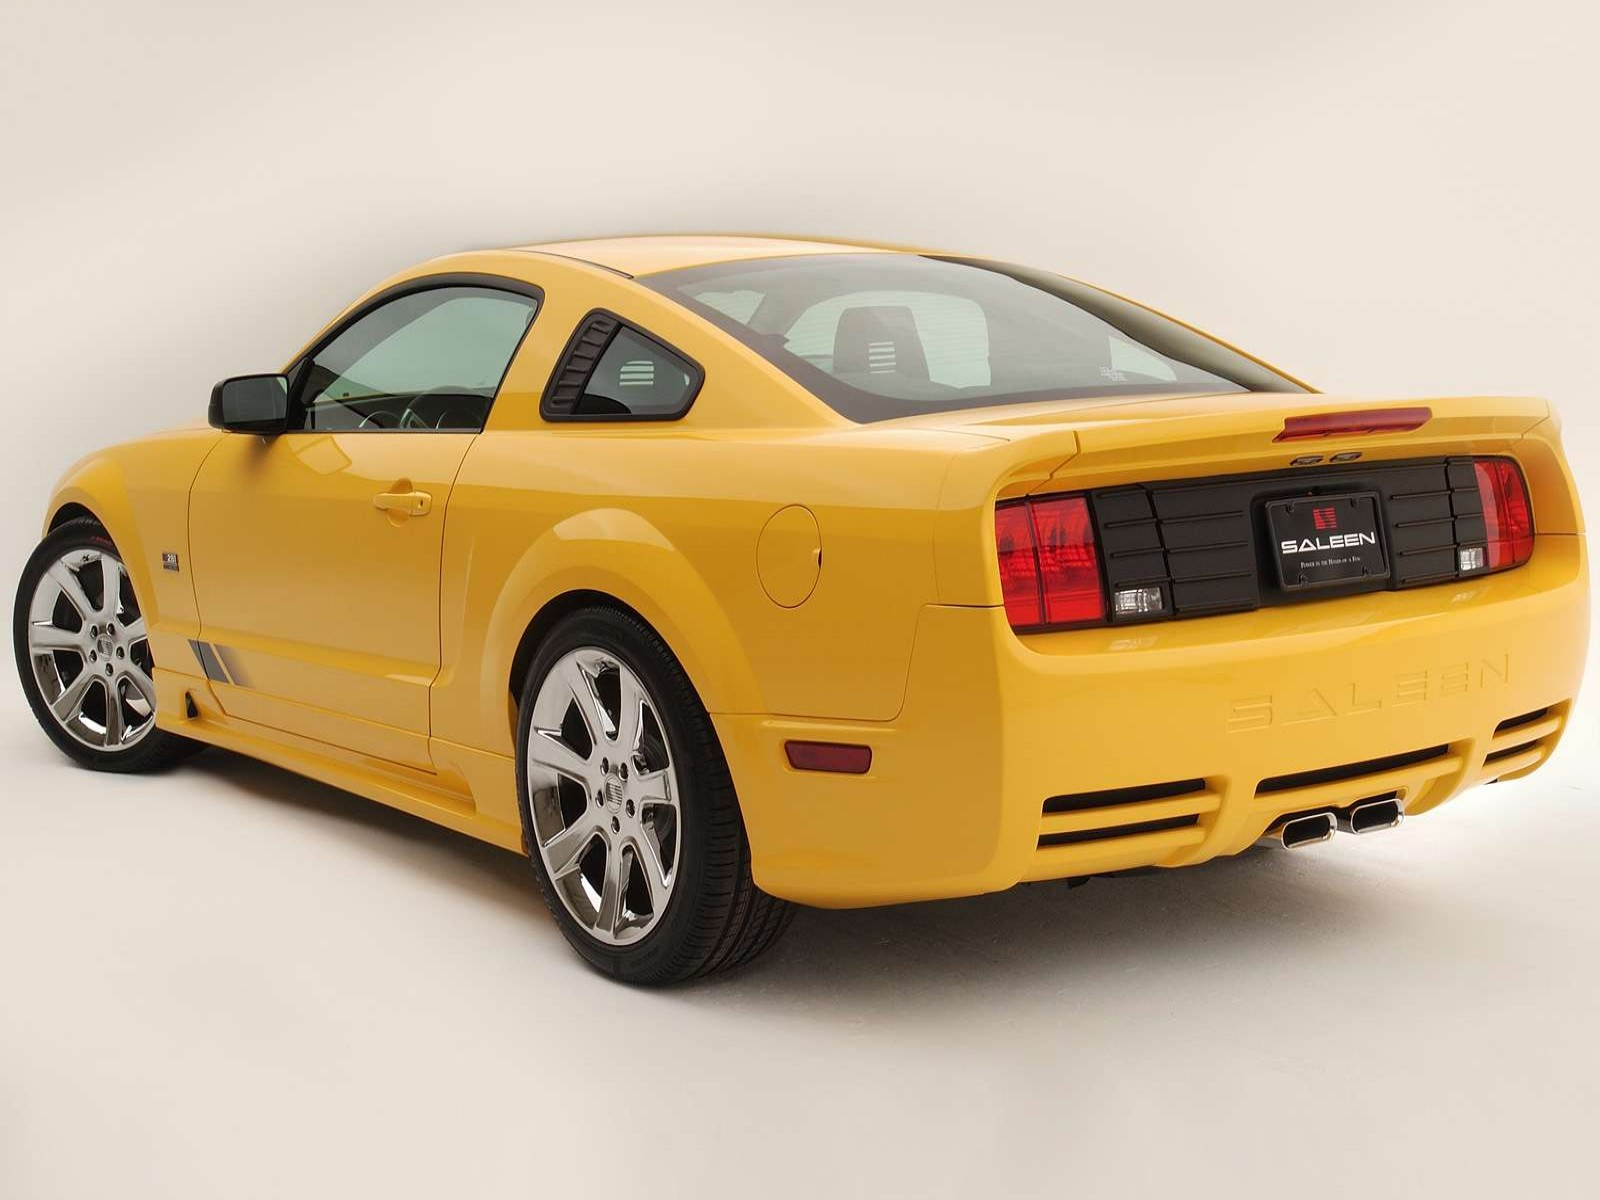 Car Picture: Saleen Ford Mustang S281 3 Valve 2005